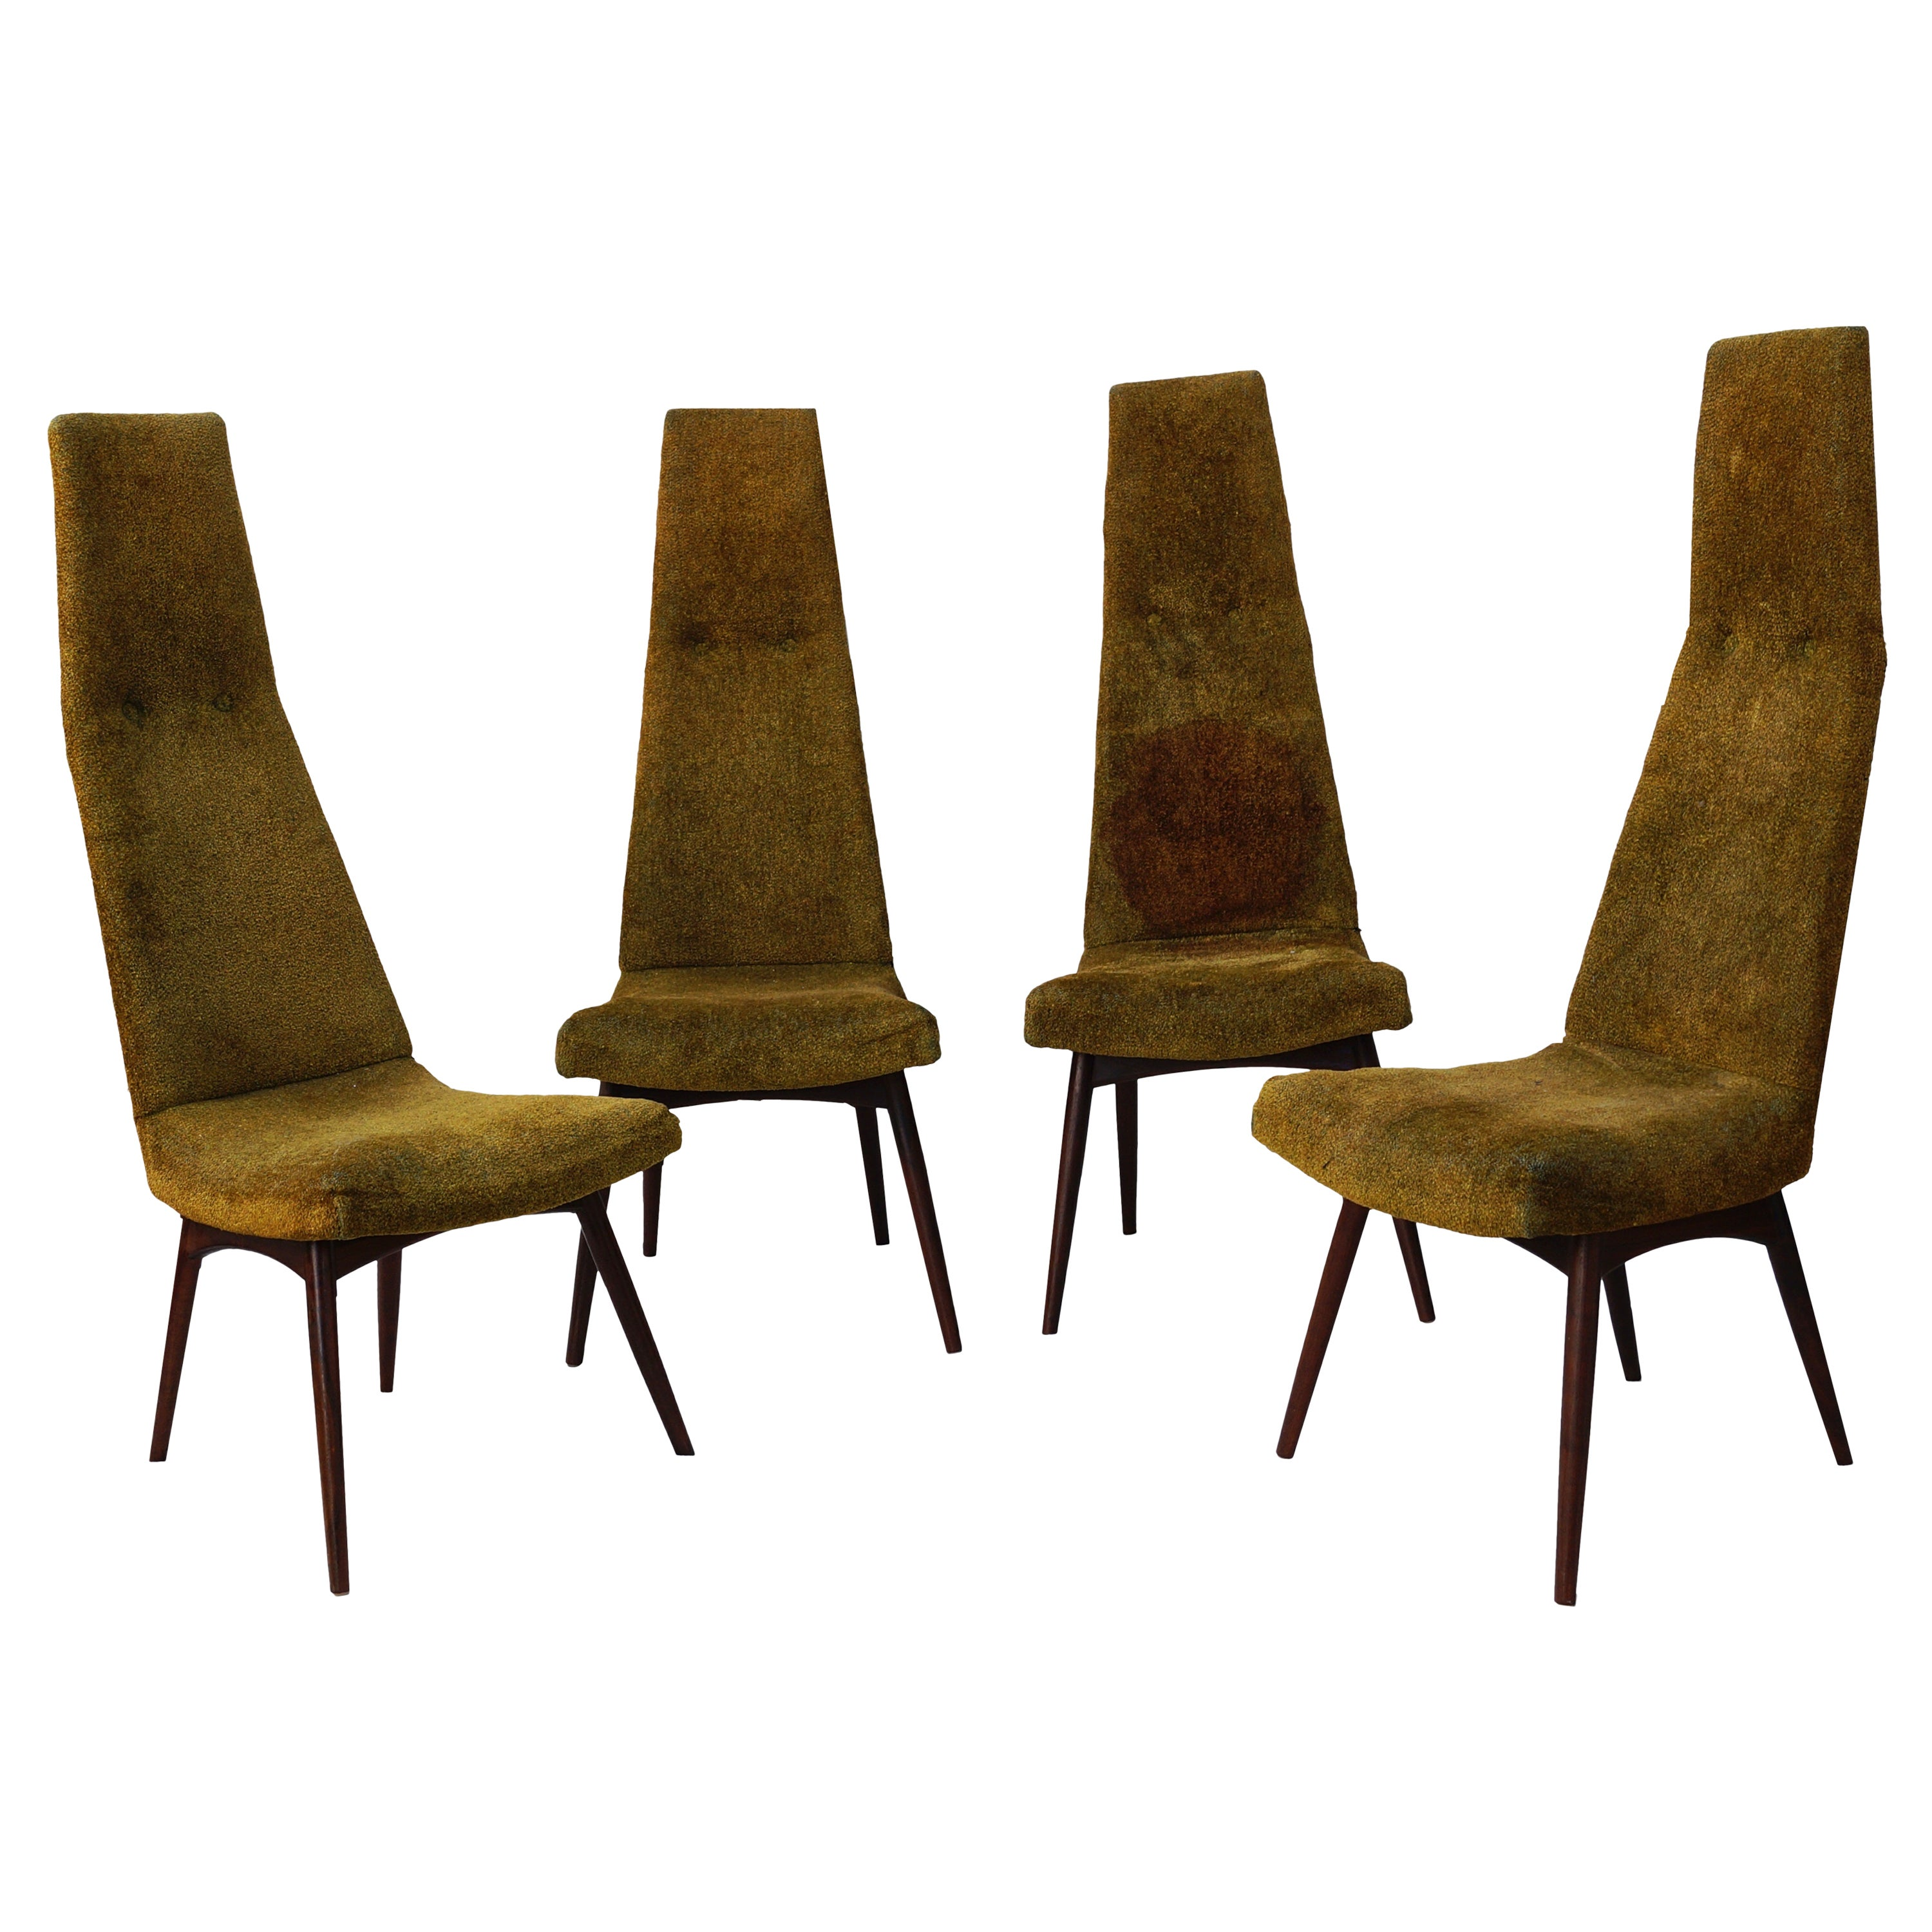 Set of Four Adrian Pearsall High Back Dining Chairs for Craft Associates